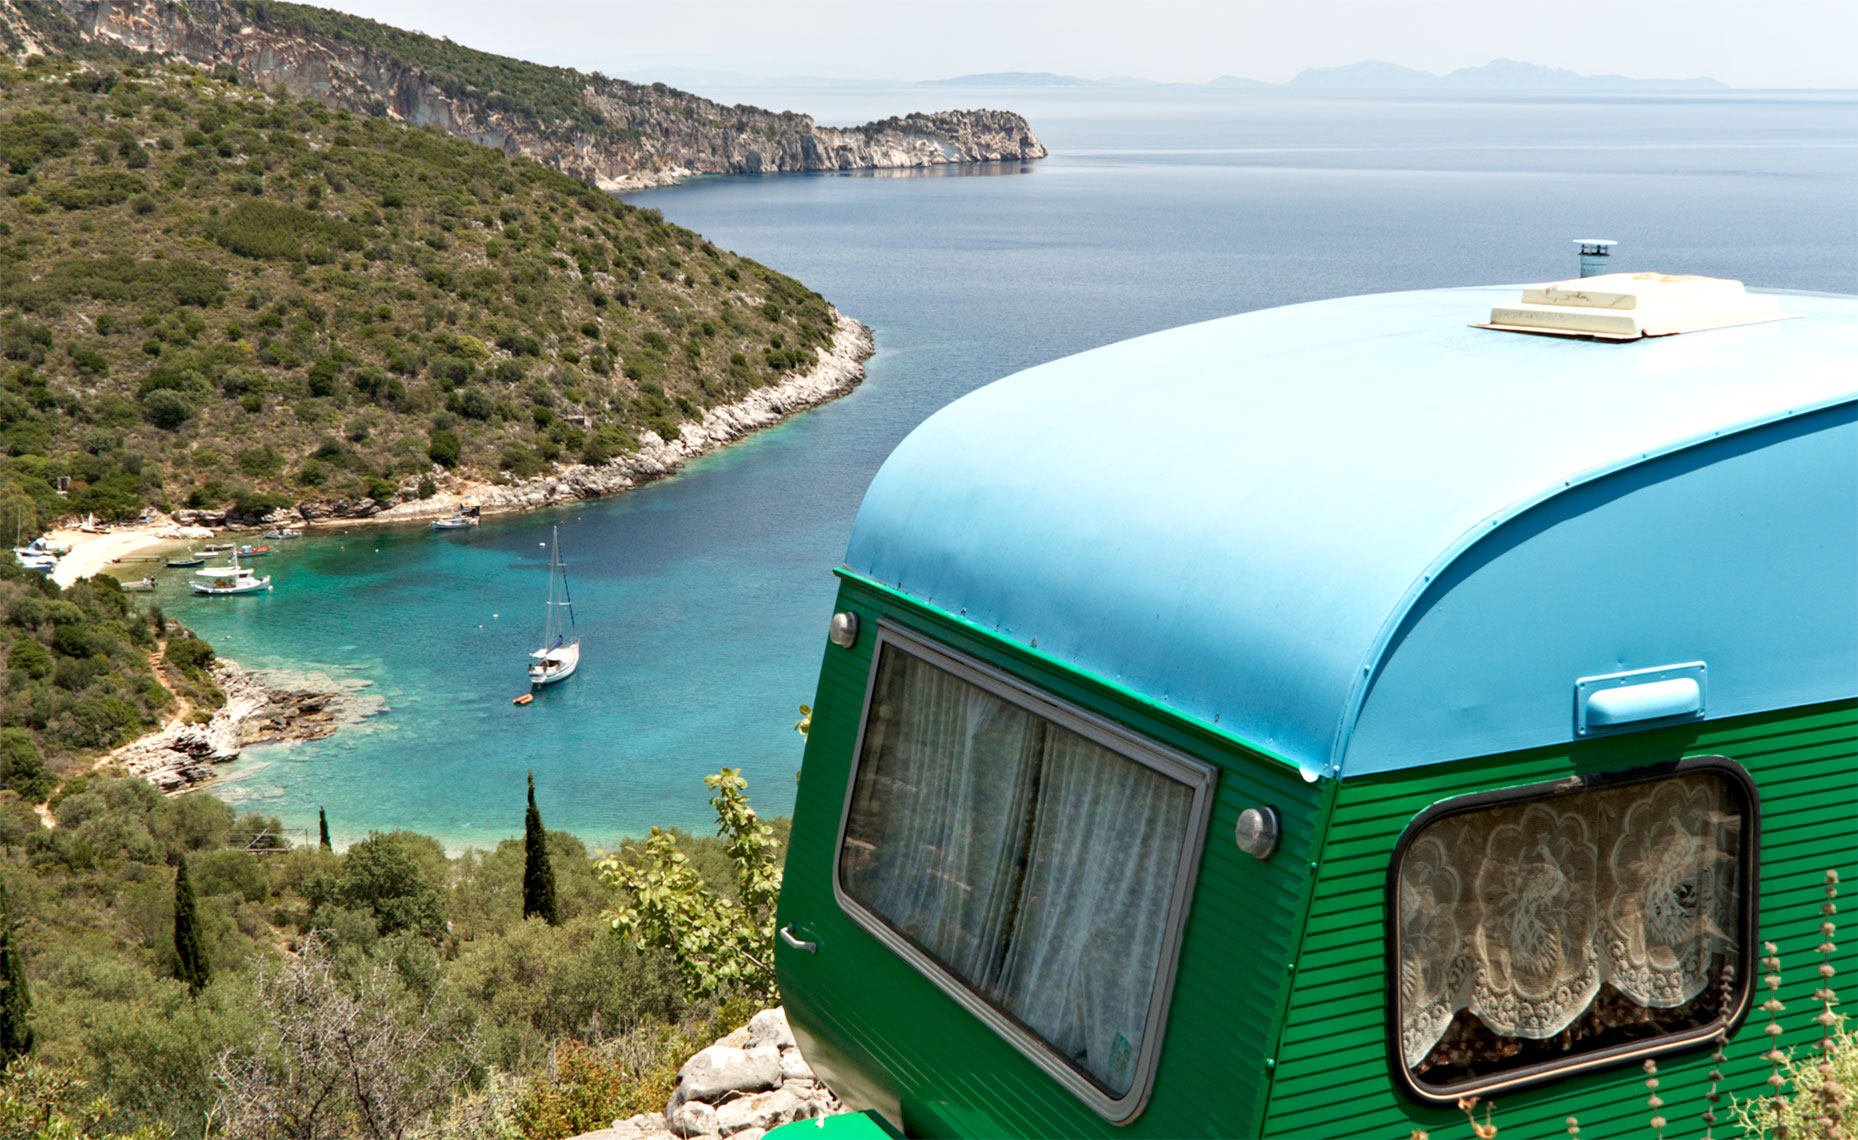 Trailer, Greece